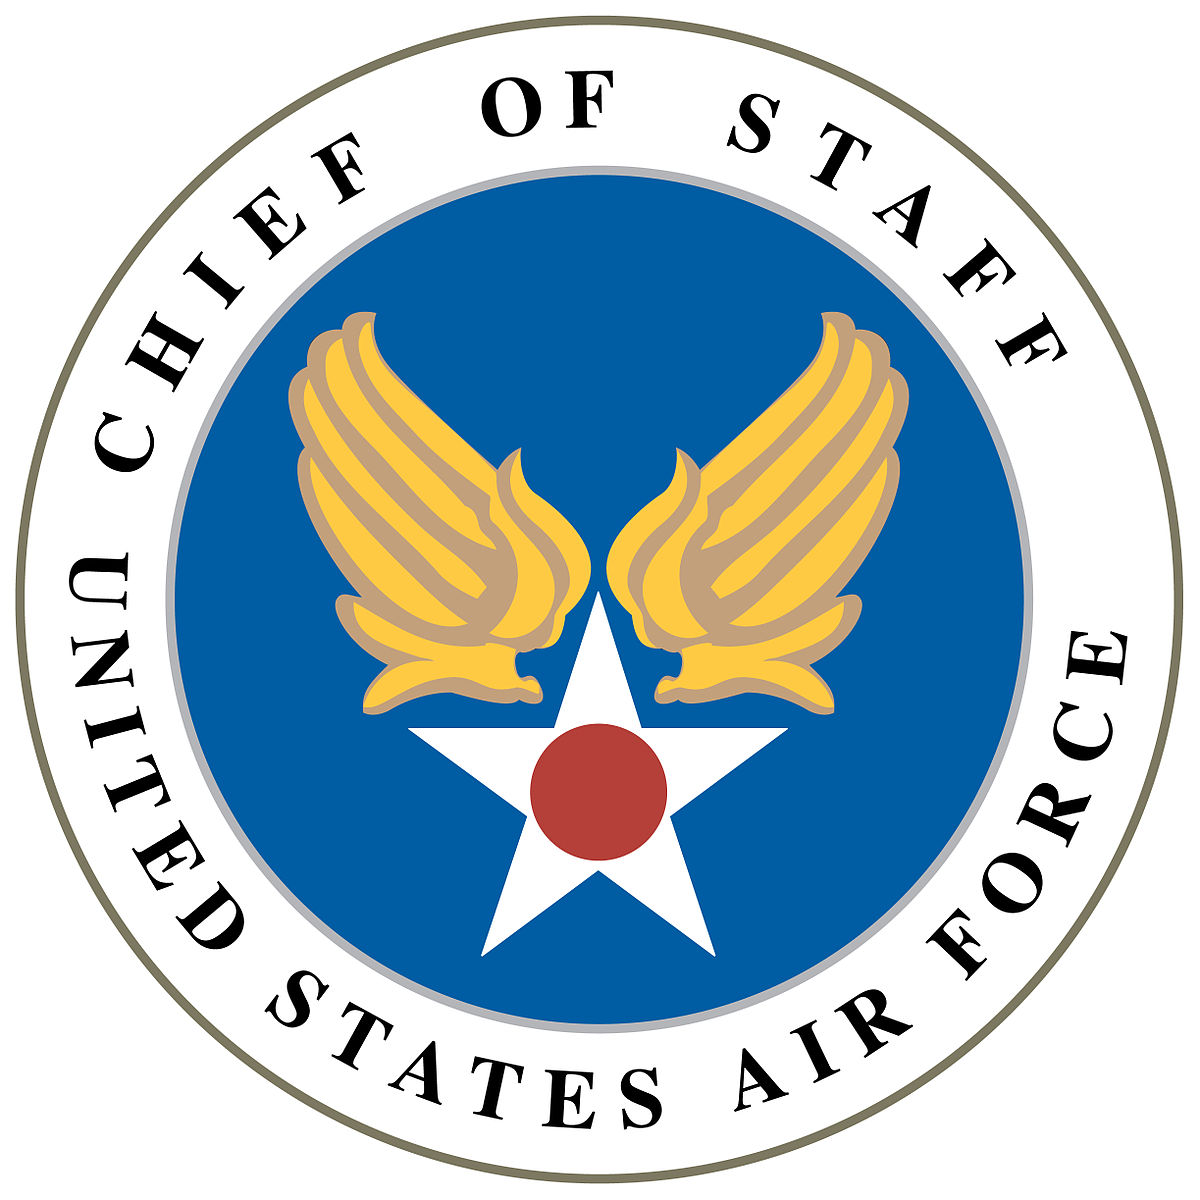 Government clipart chief state. Of staff the united